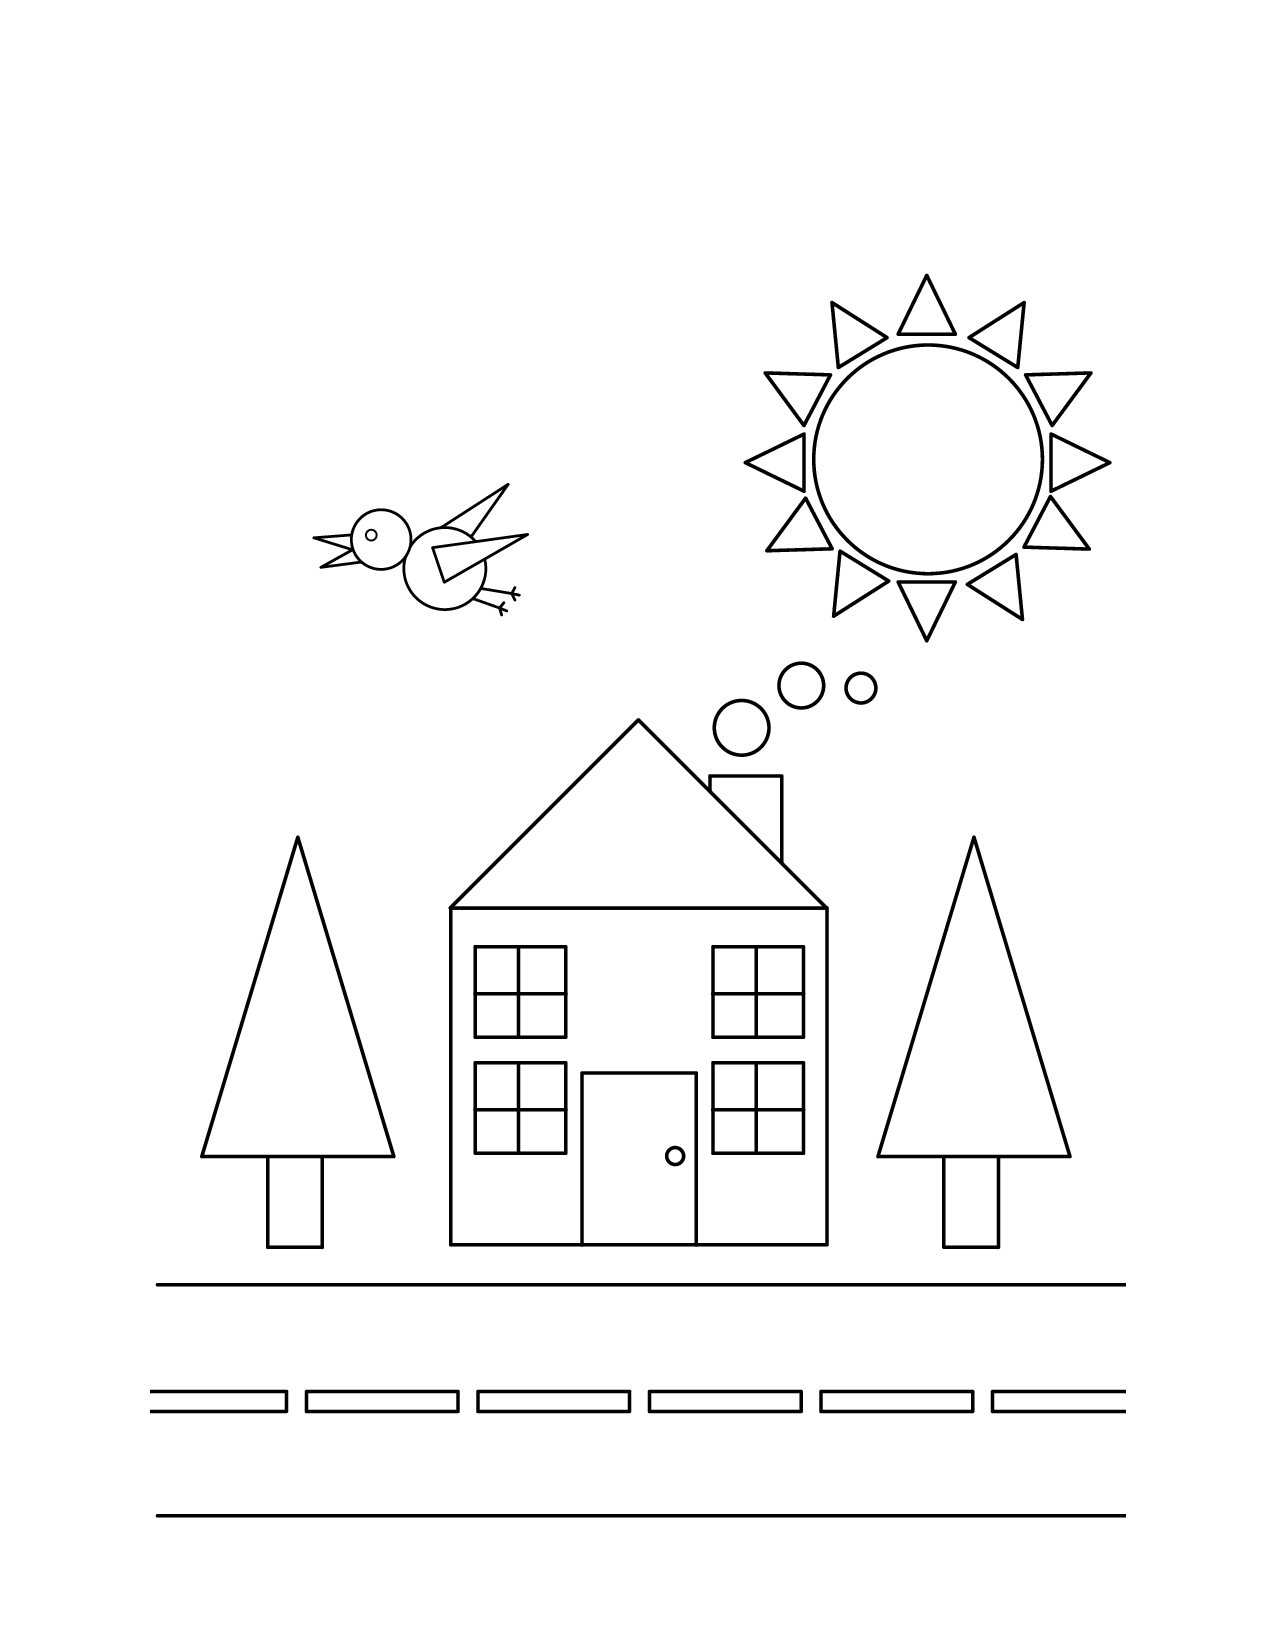 Coloring pages 3d shapes -  Shapes Coloring Pages Download